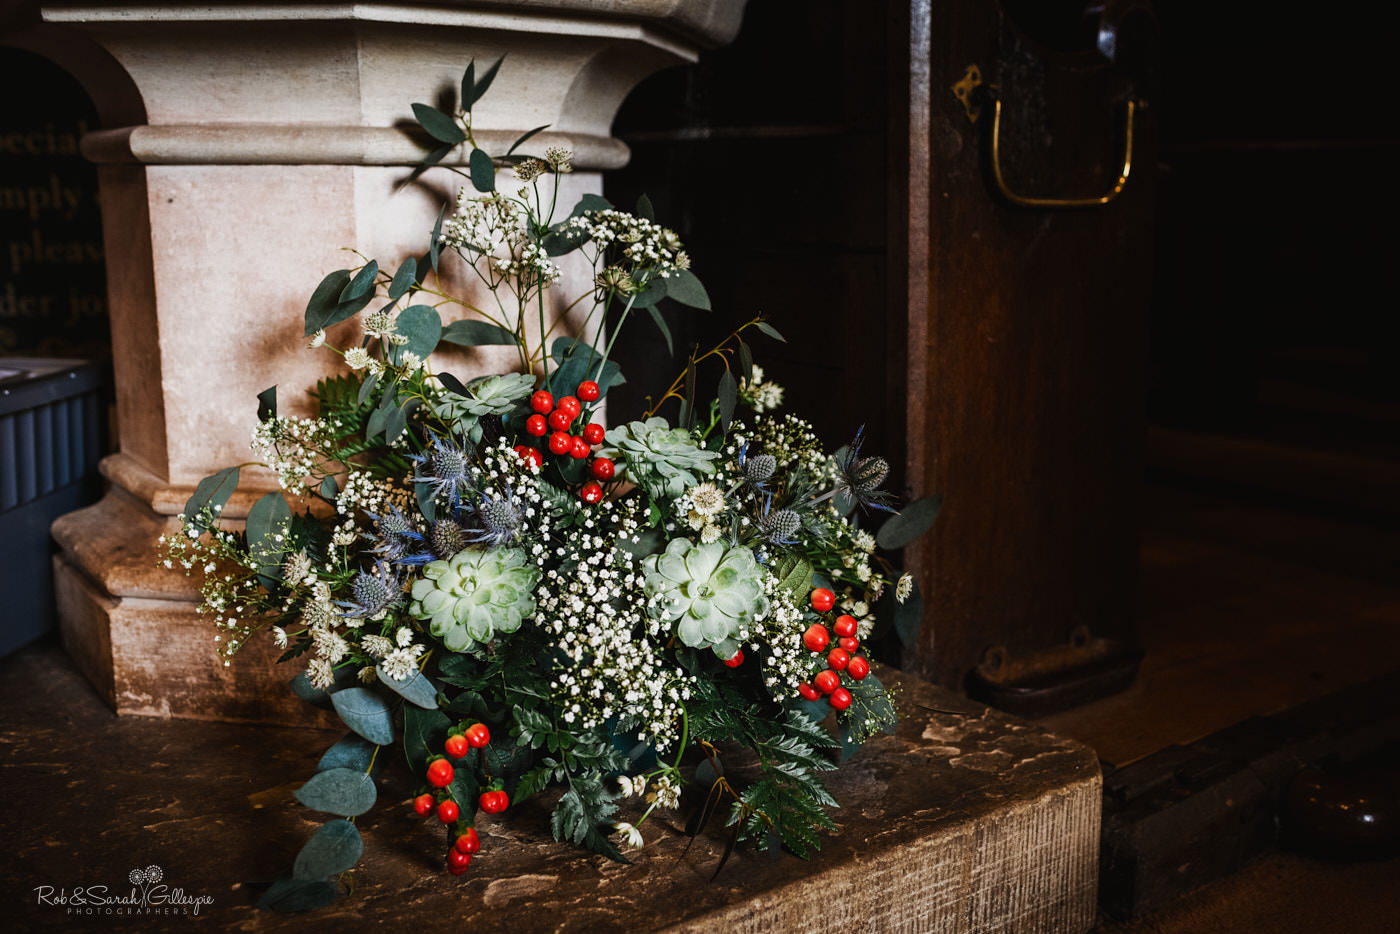 Flowers decorate St Kenelm's church in Worcestershire